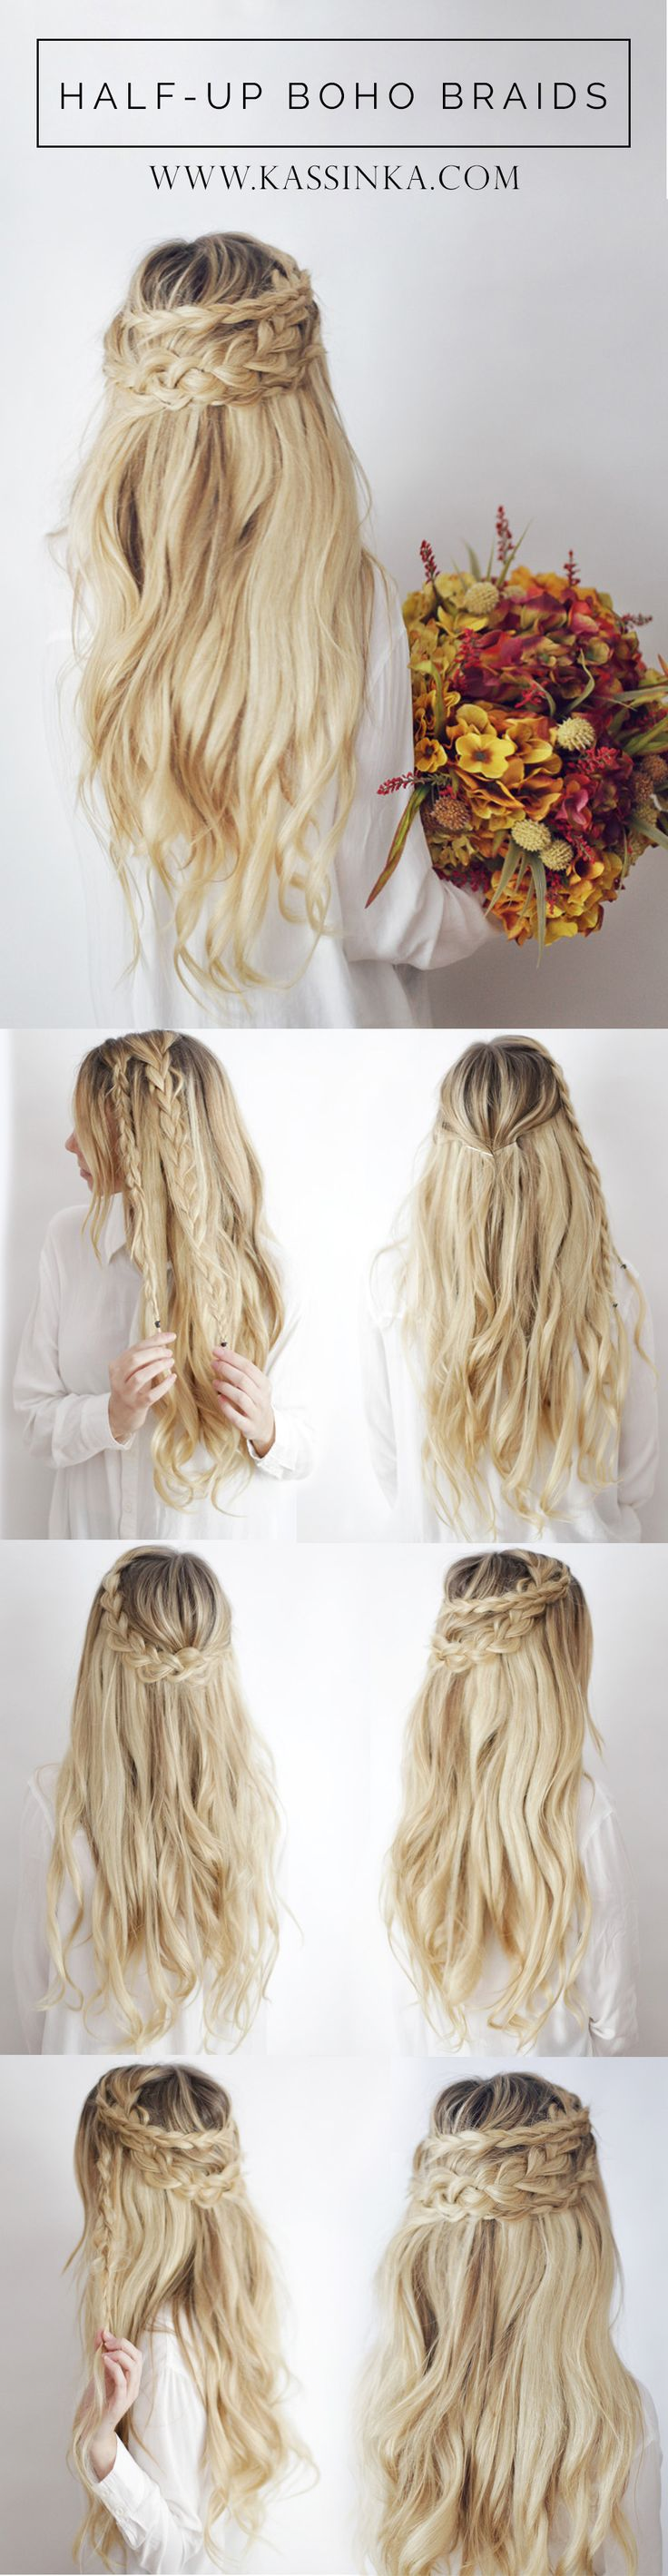 347 best Hair Tutorials & Ideas images on Pinterest | Hairstyle ...